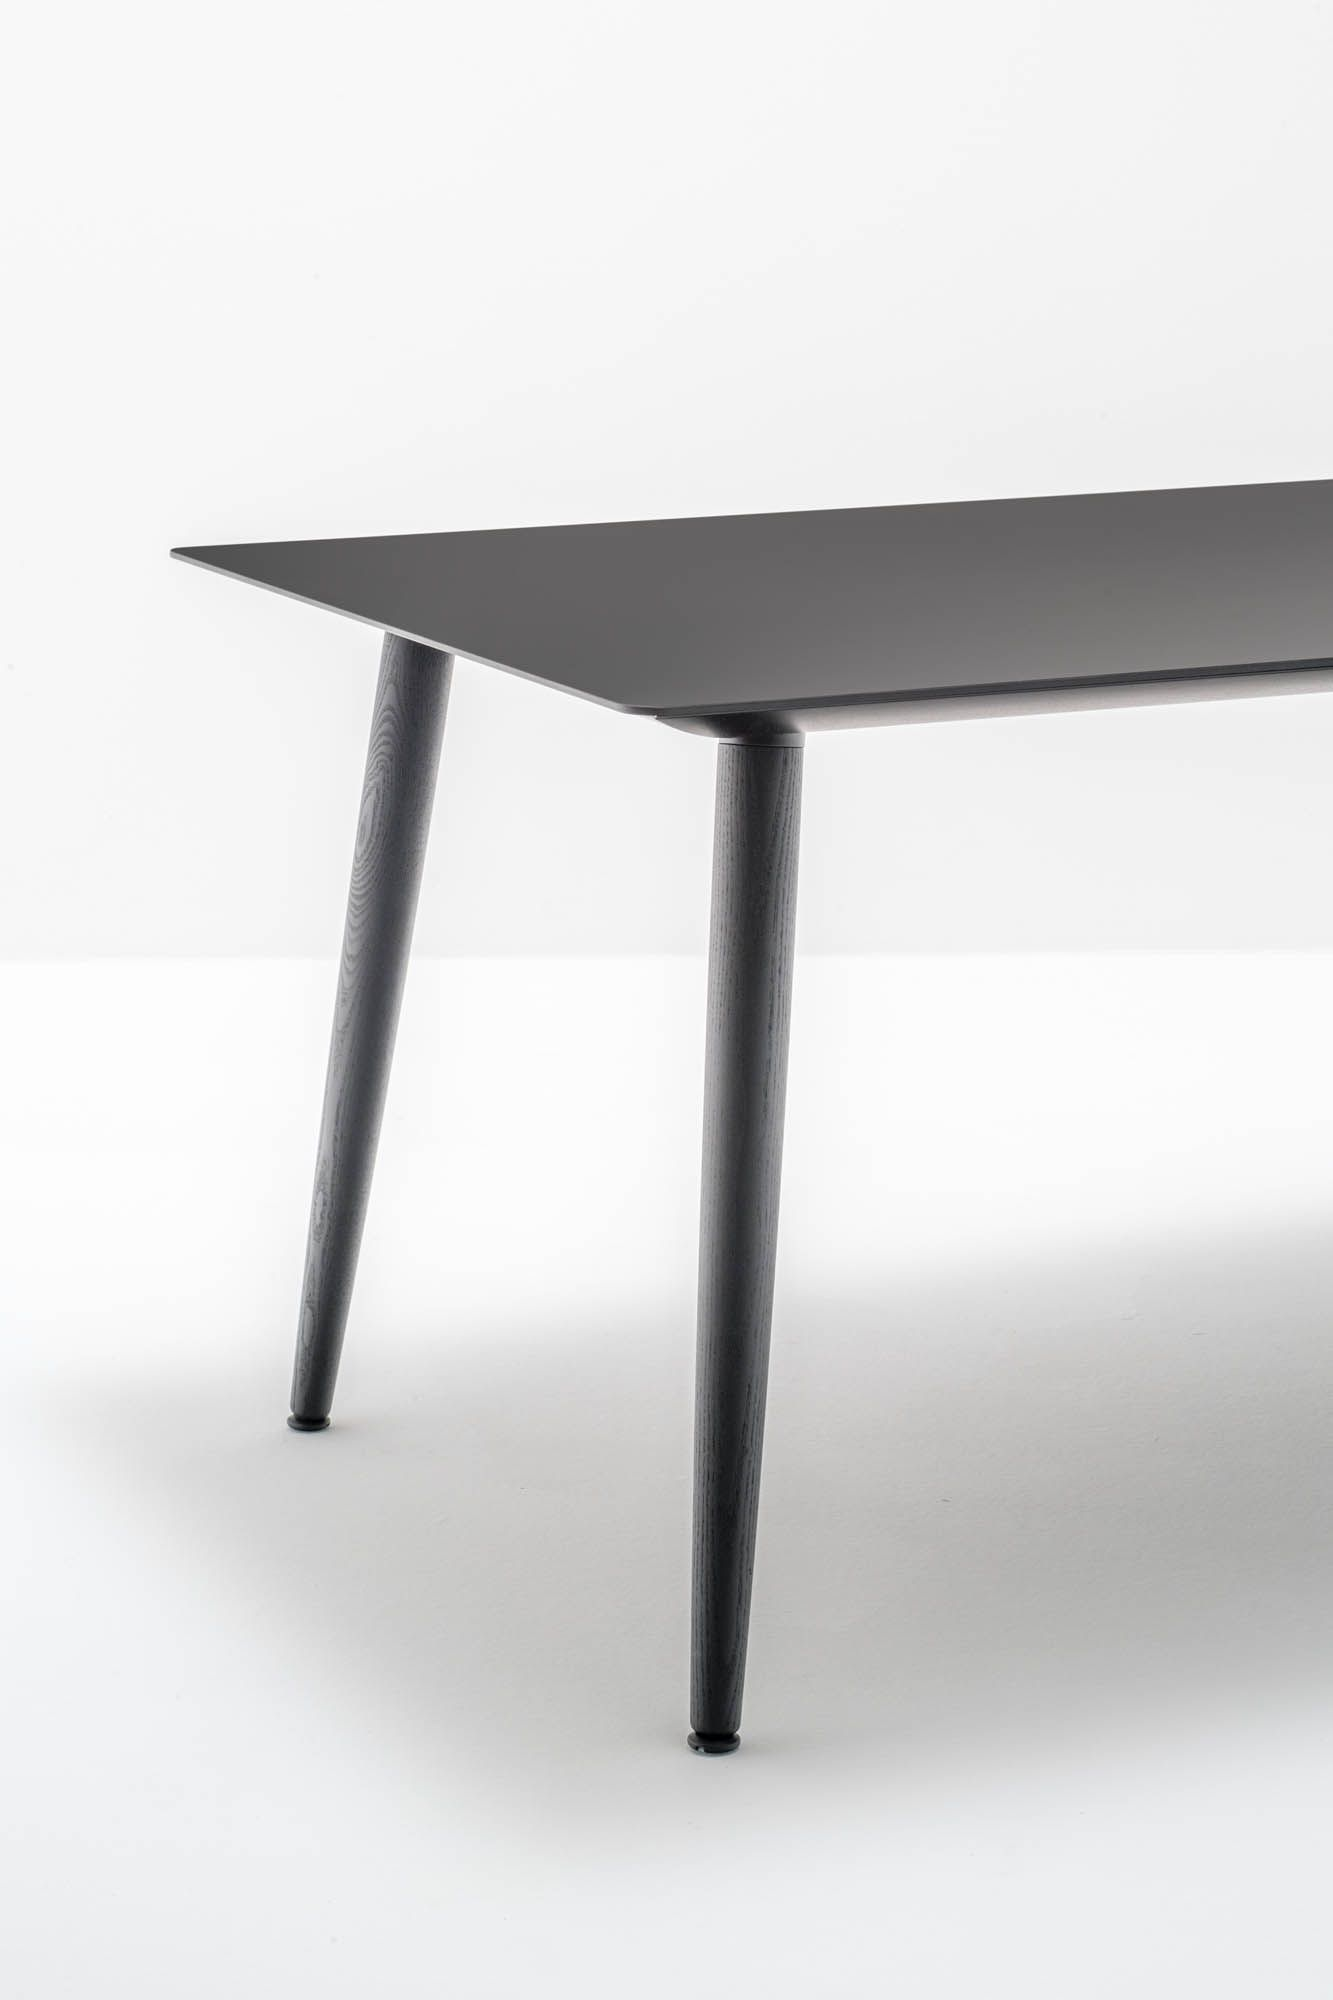 Babila table design Pedrali Solid ash wood legs matched with an ultra